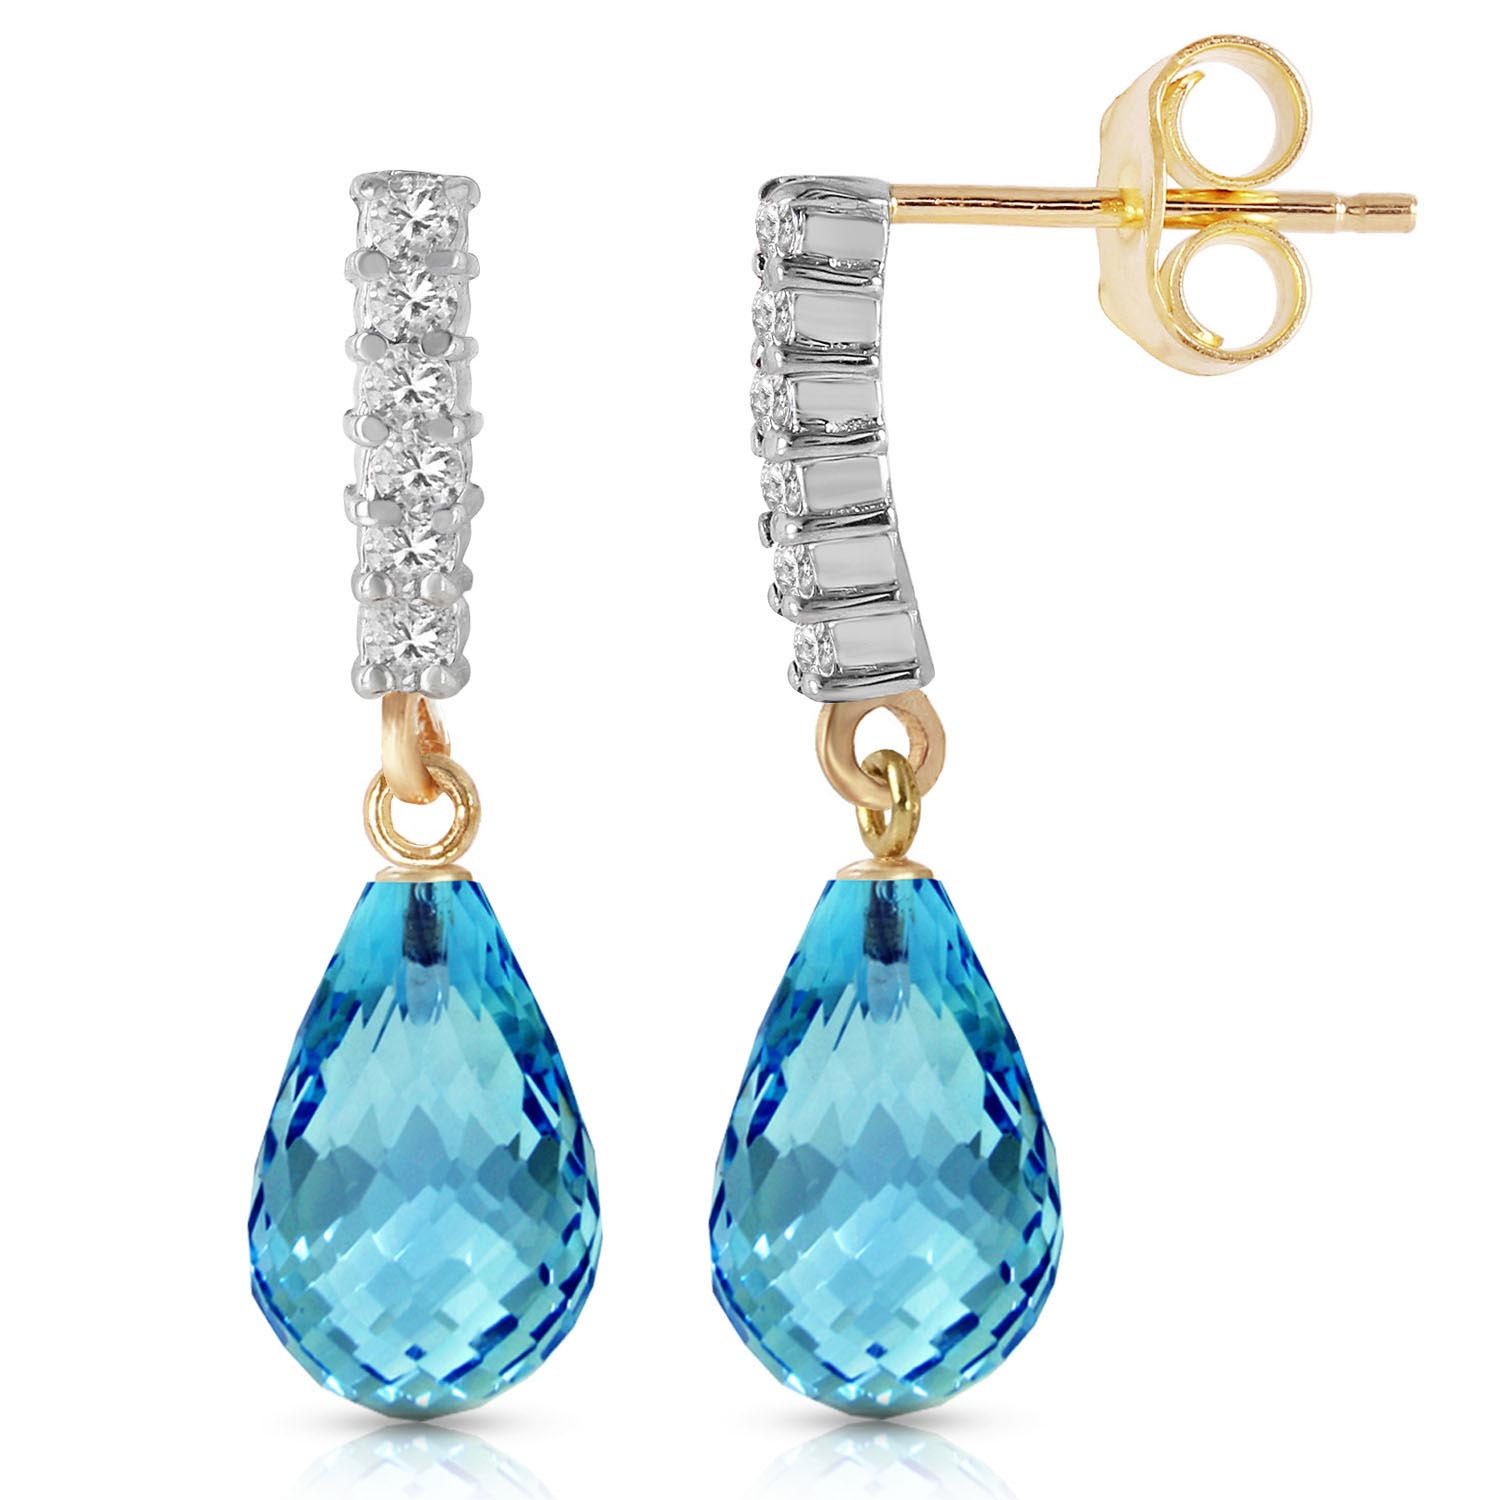 Blue Topaz and Diamond Stem Droplet Earrings 4.5ctw in 9ct Gold